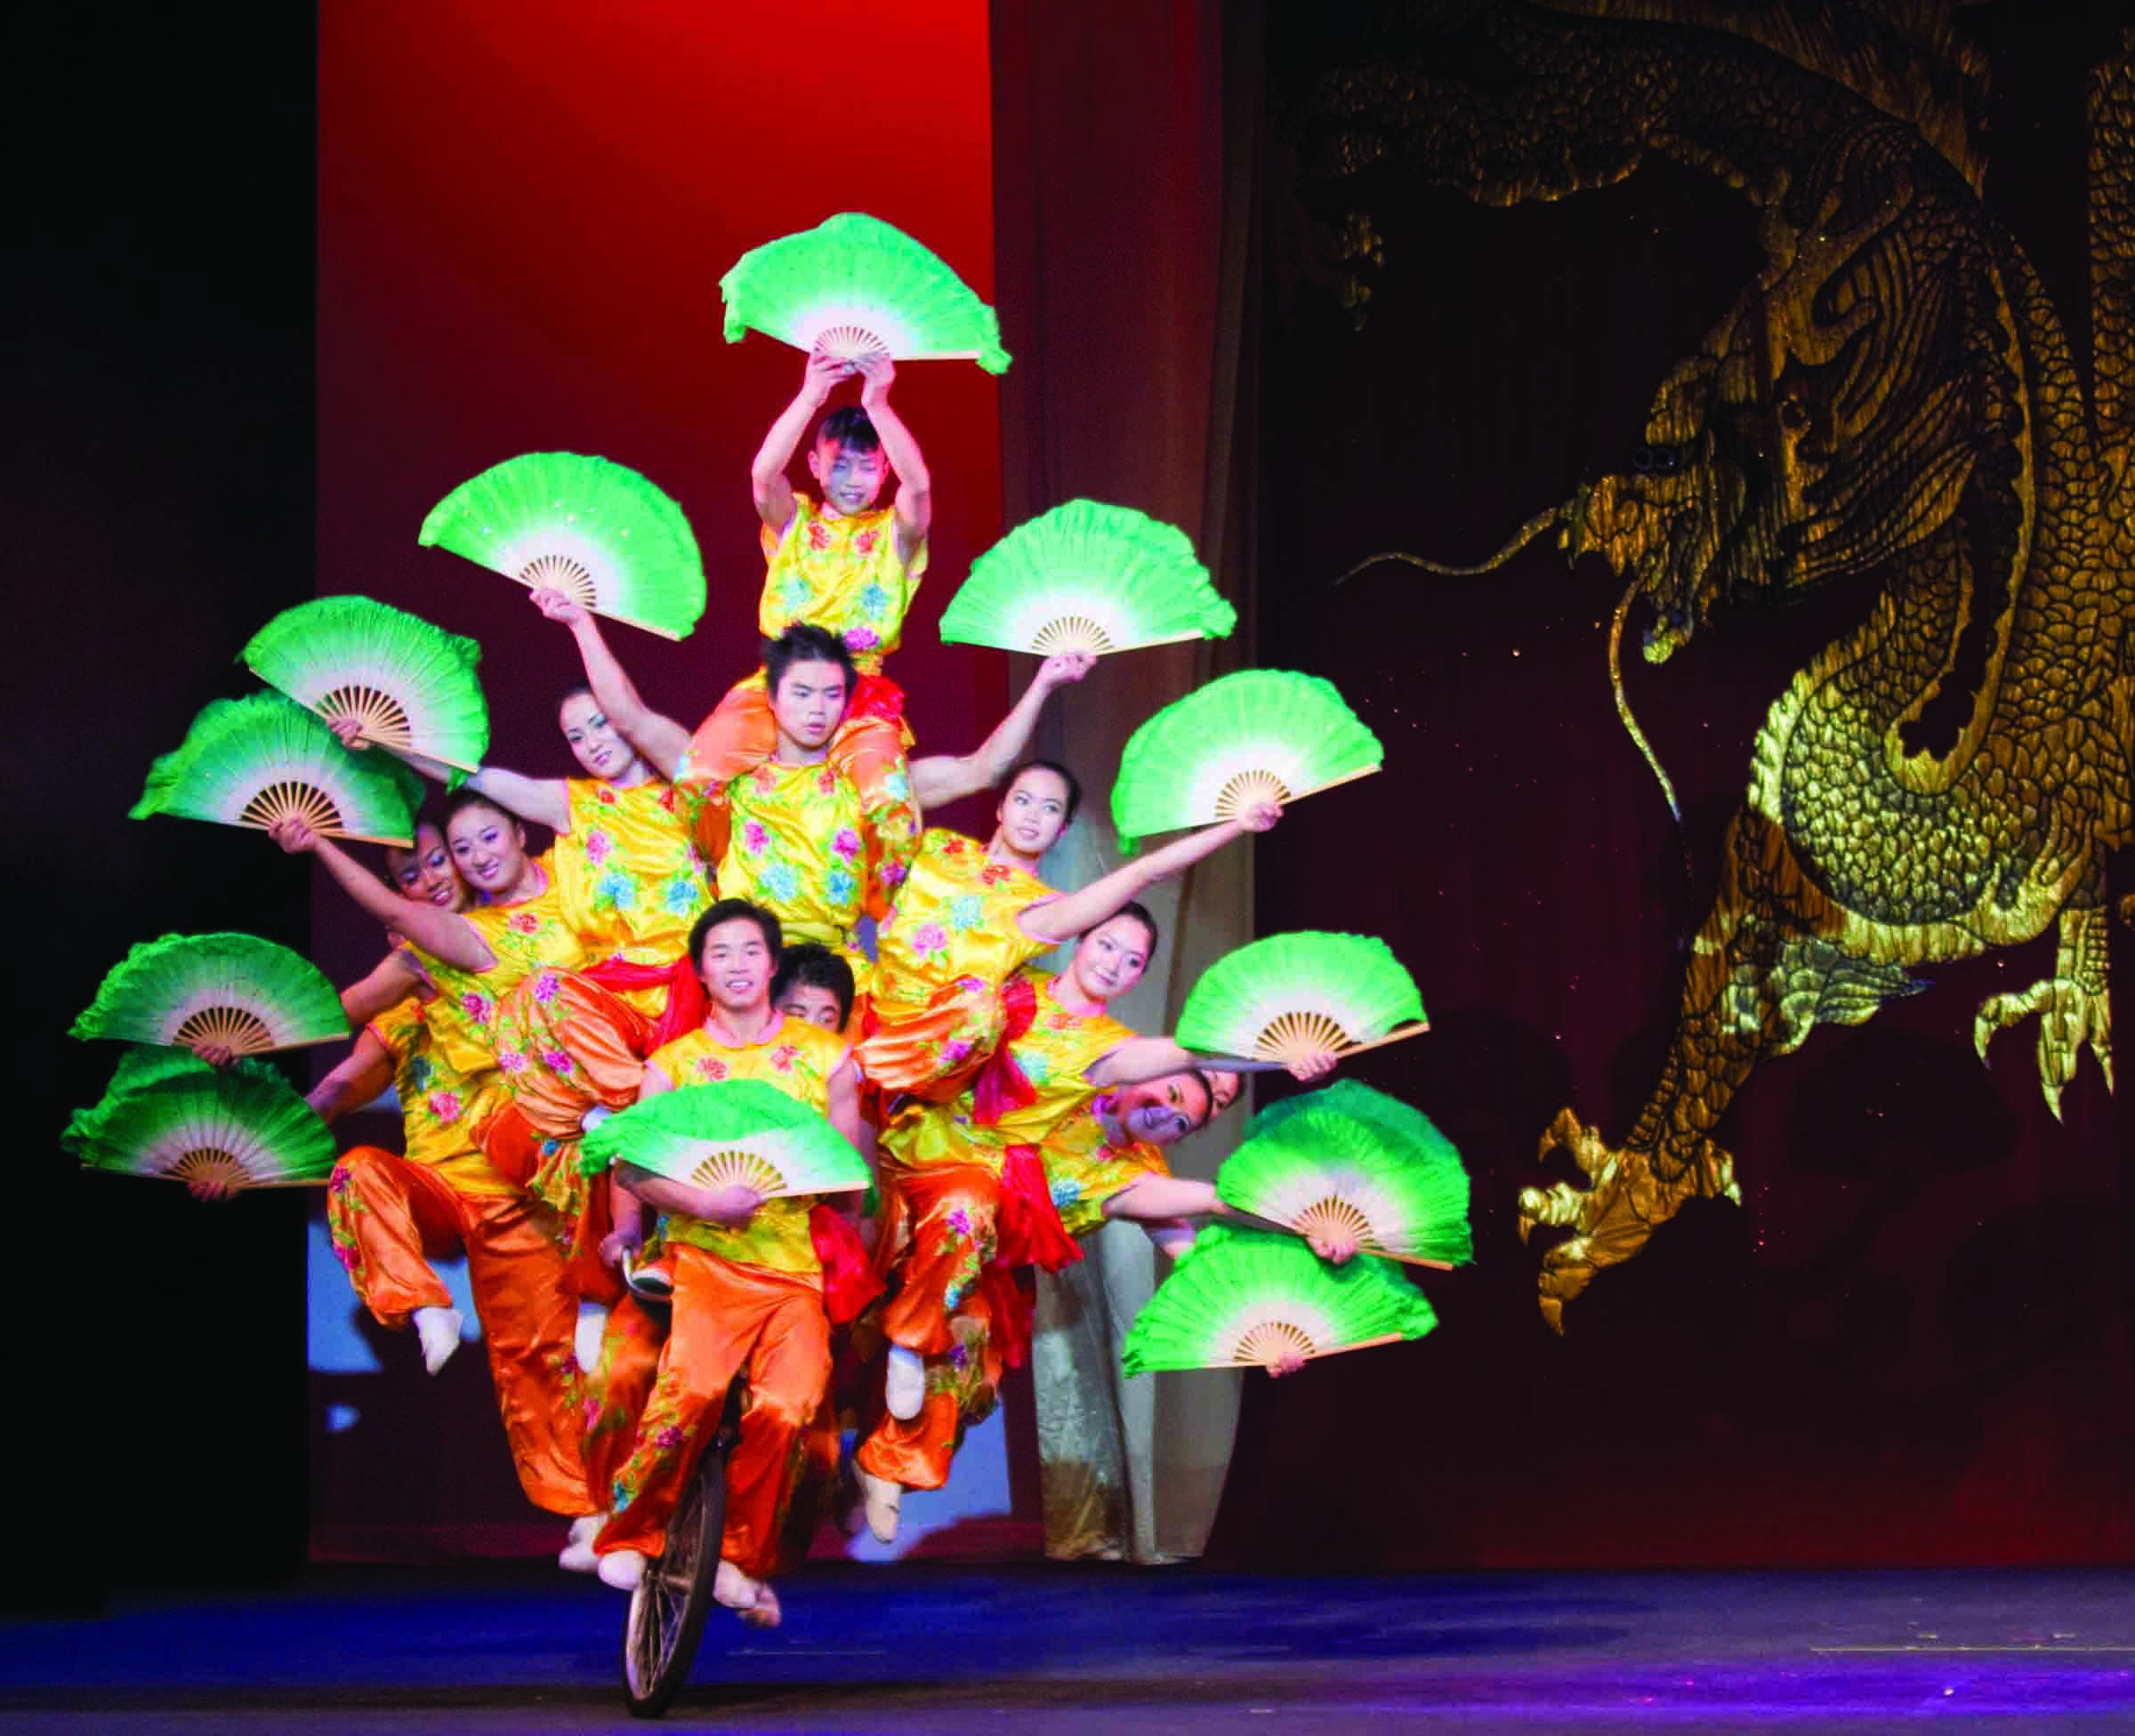 The Peking Acrobats wear bright costumes and hold fans during a performance